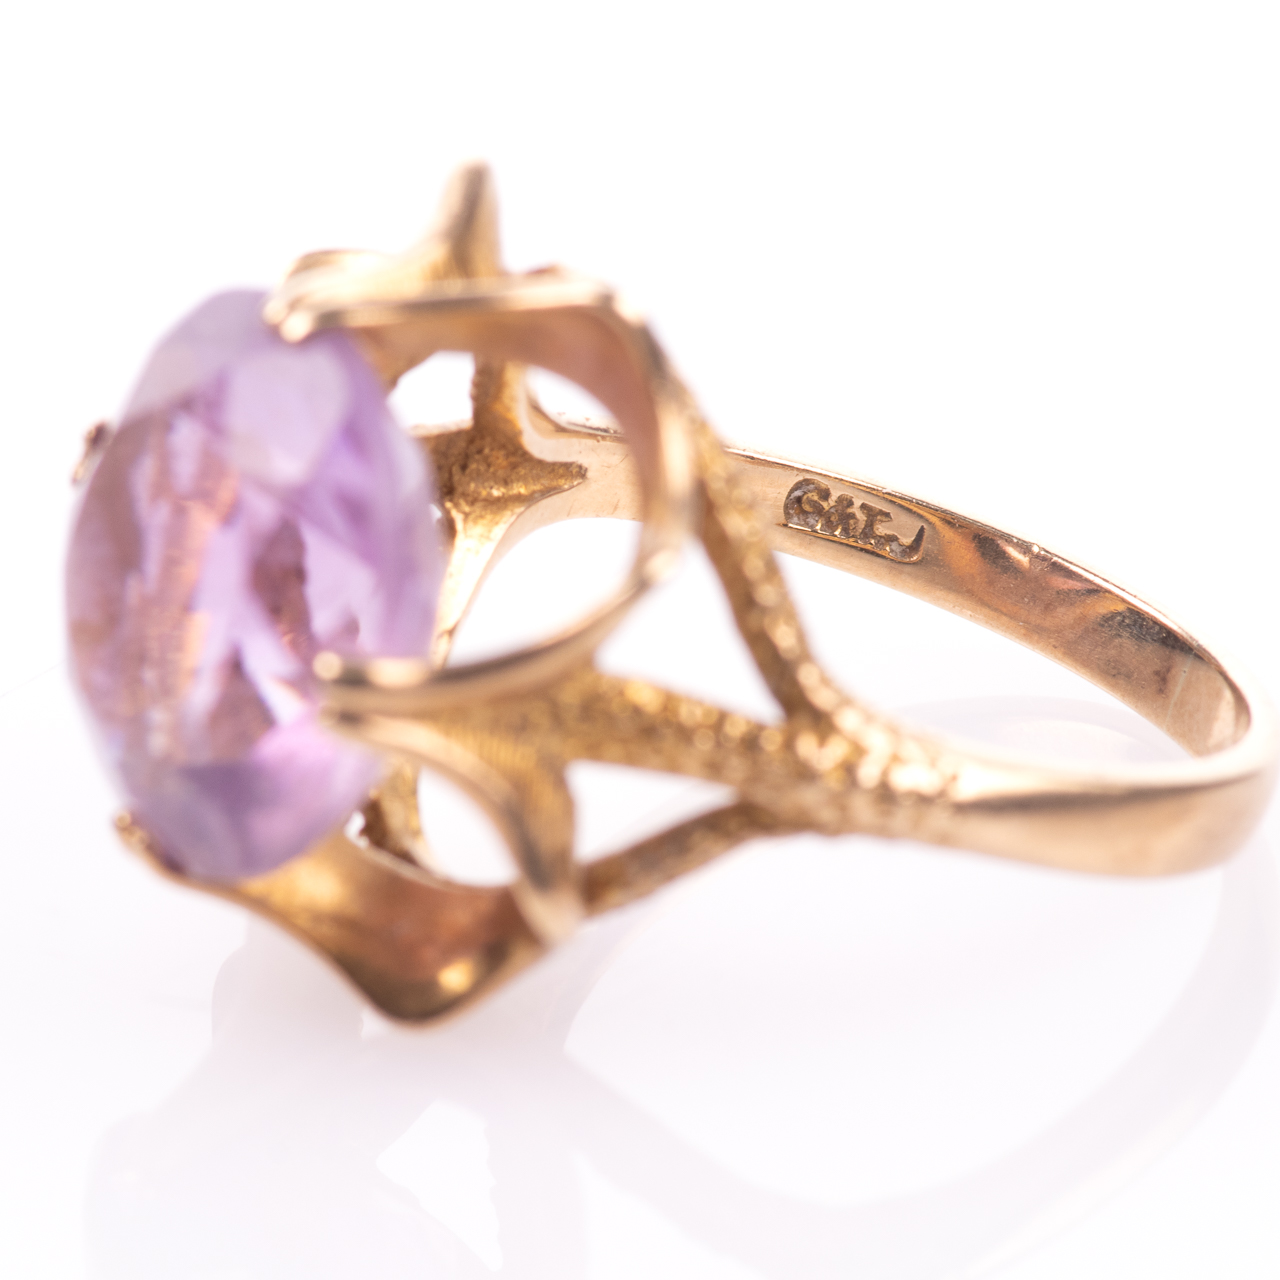 9ct Gold 6.45ct Amethyst Ring London 1974 - Image 5 of 8